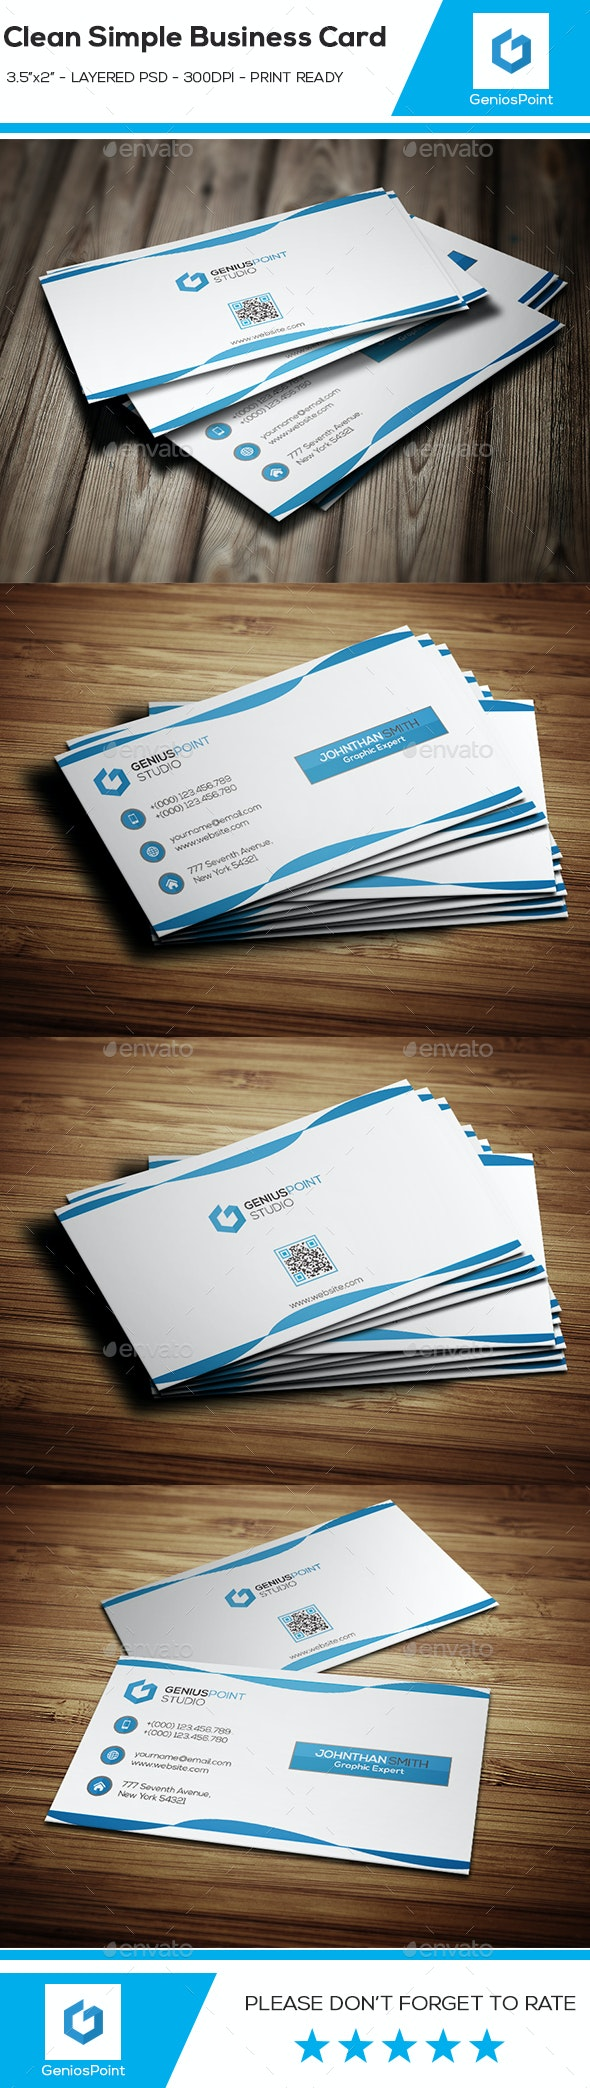 Clean Simple Business Card - Business Cards Print Templates